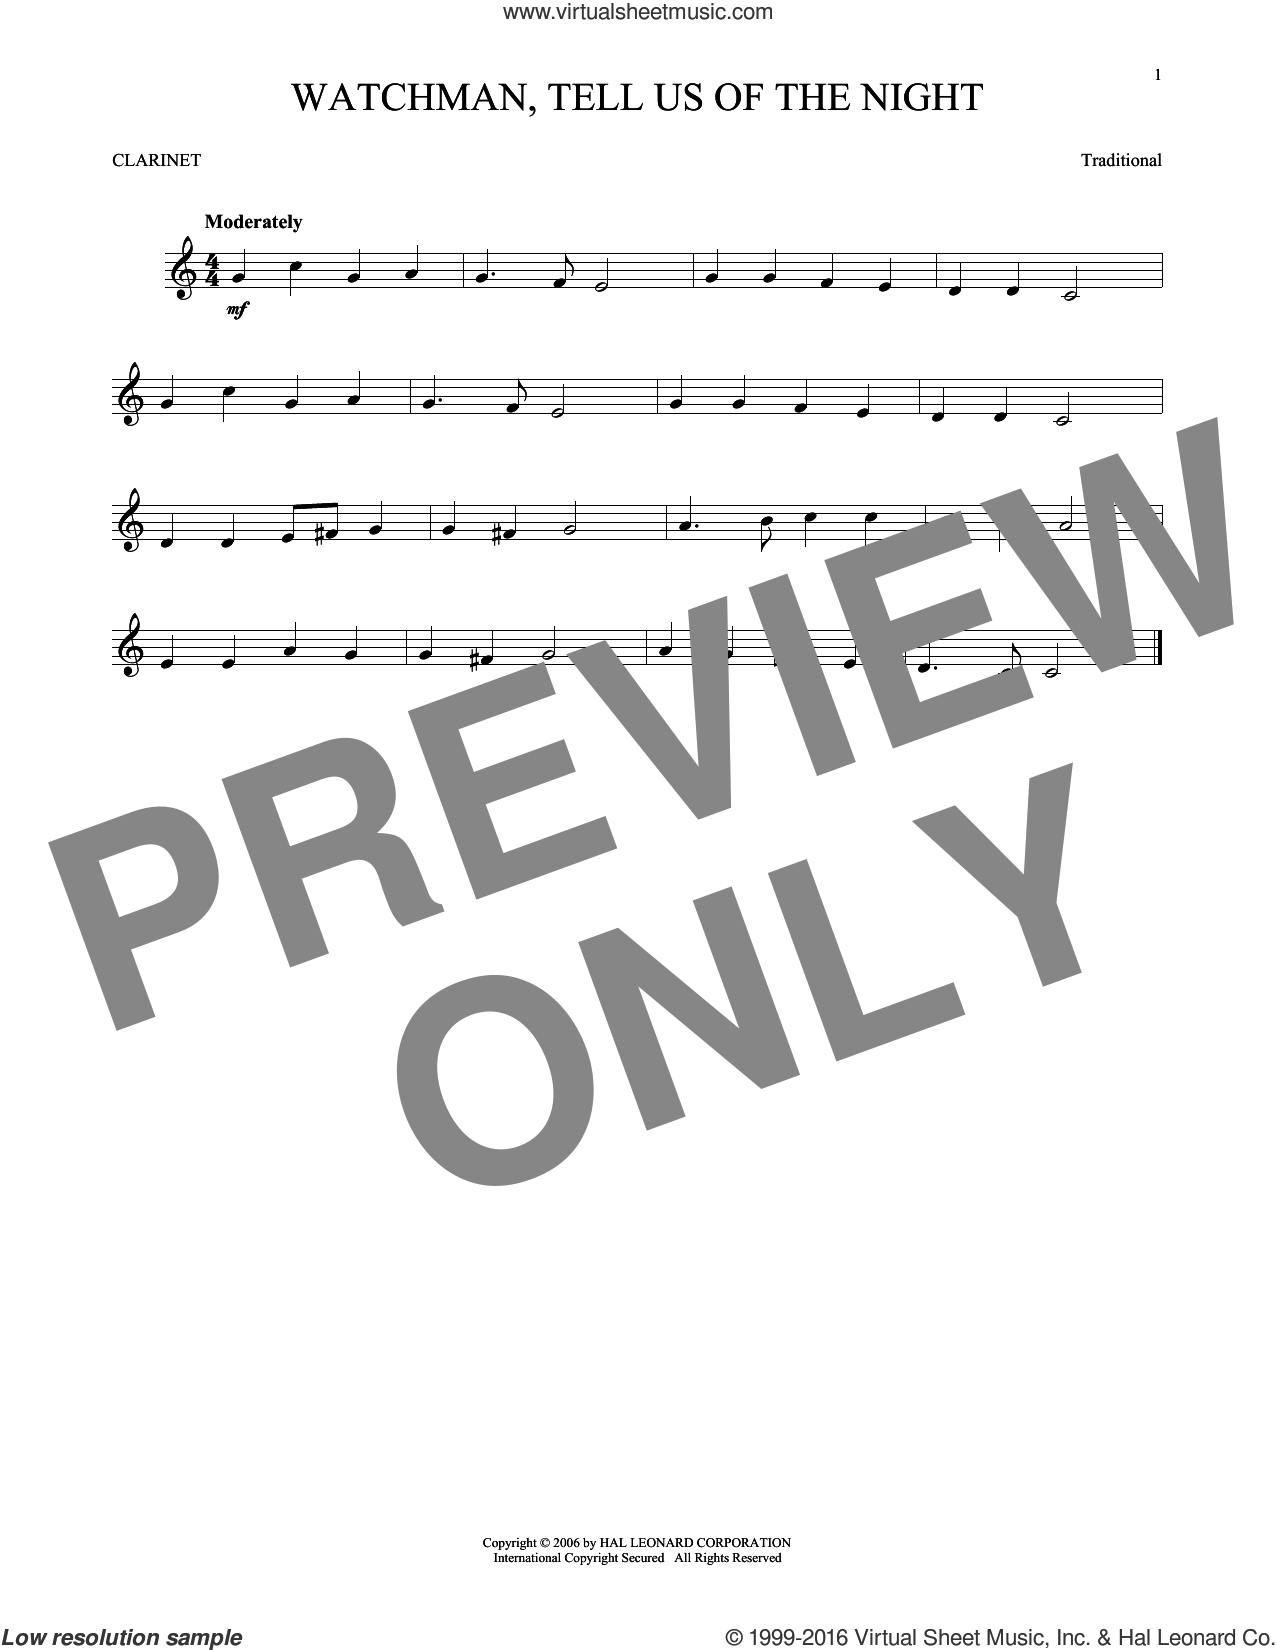 Watchman, Tell Us Of The Night sheet music for clarinet solo by John Bowring and Miscellaneous. Score Image Preview.